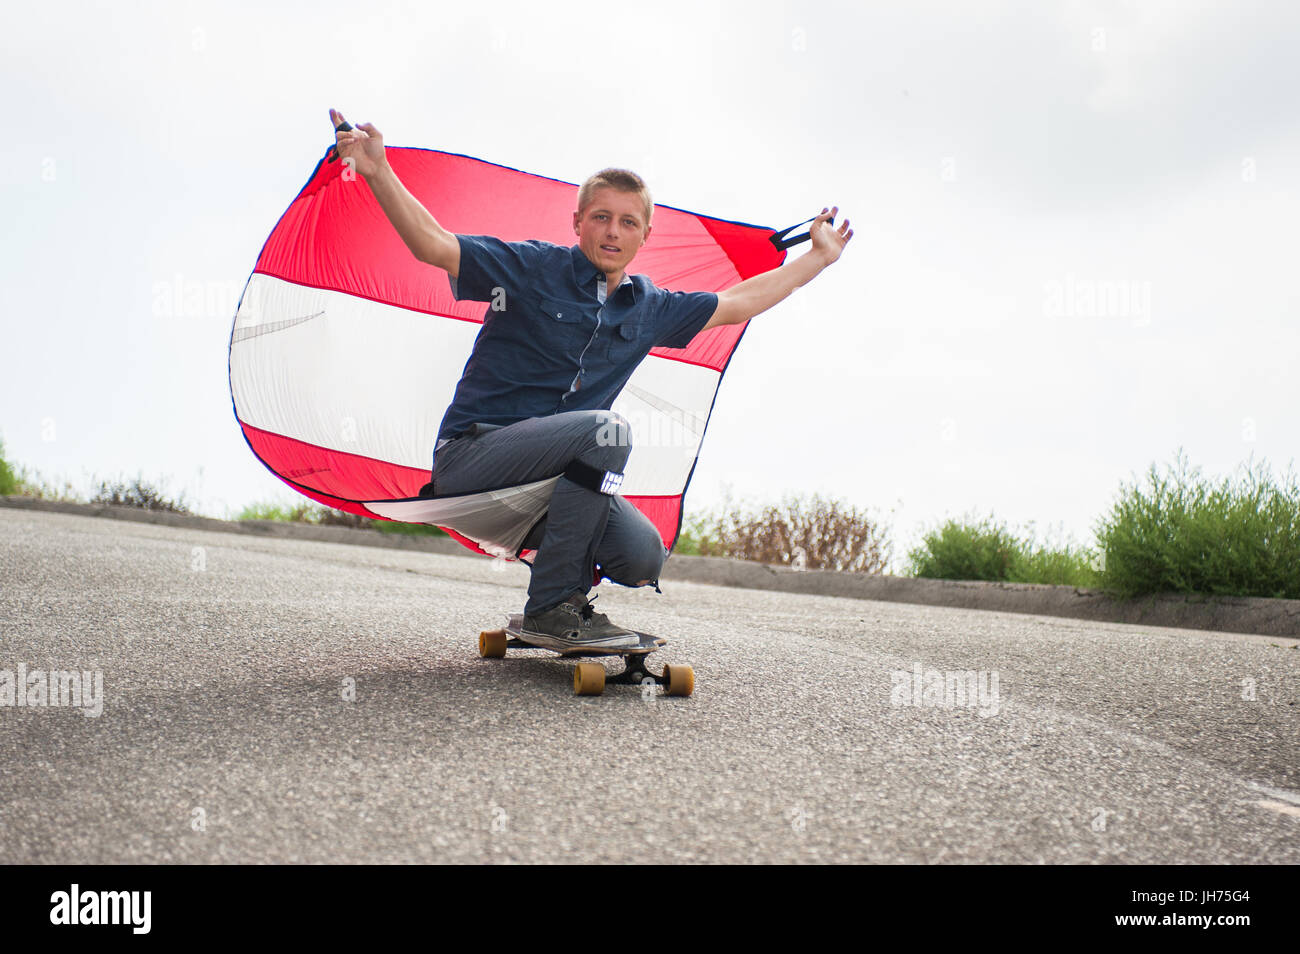 Parachute downhill skateboarder has sail full of wind as he crouches on board. Stock Photo